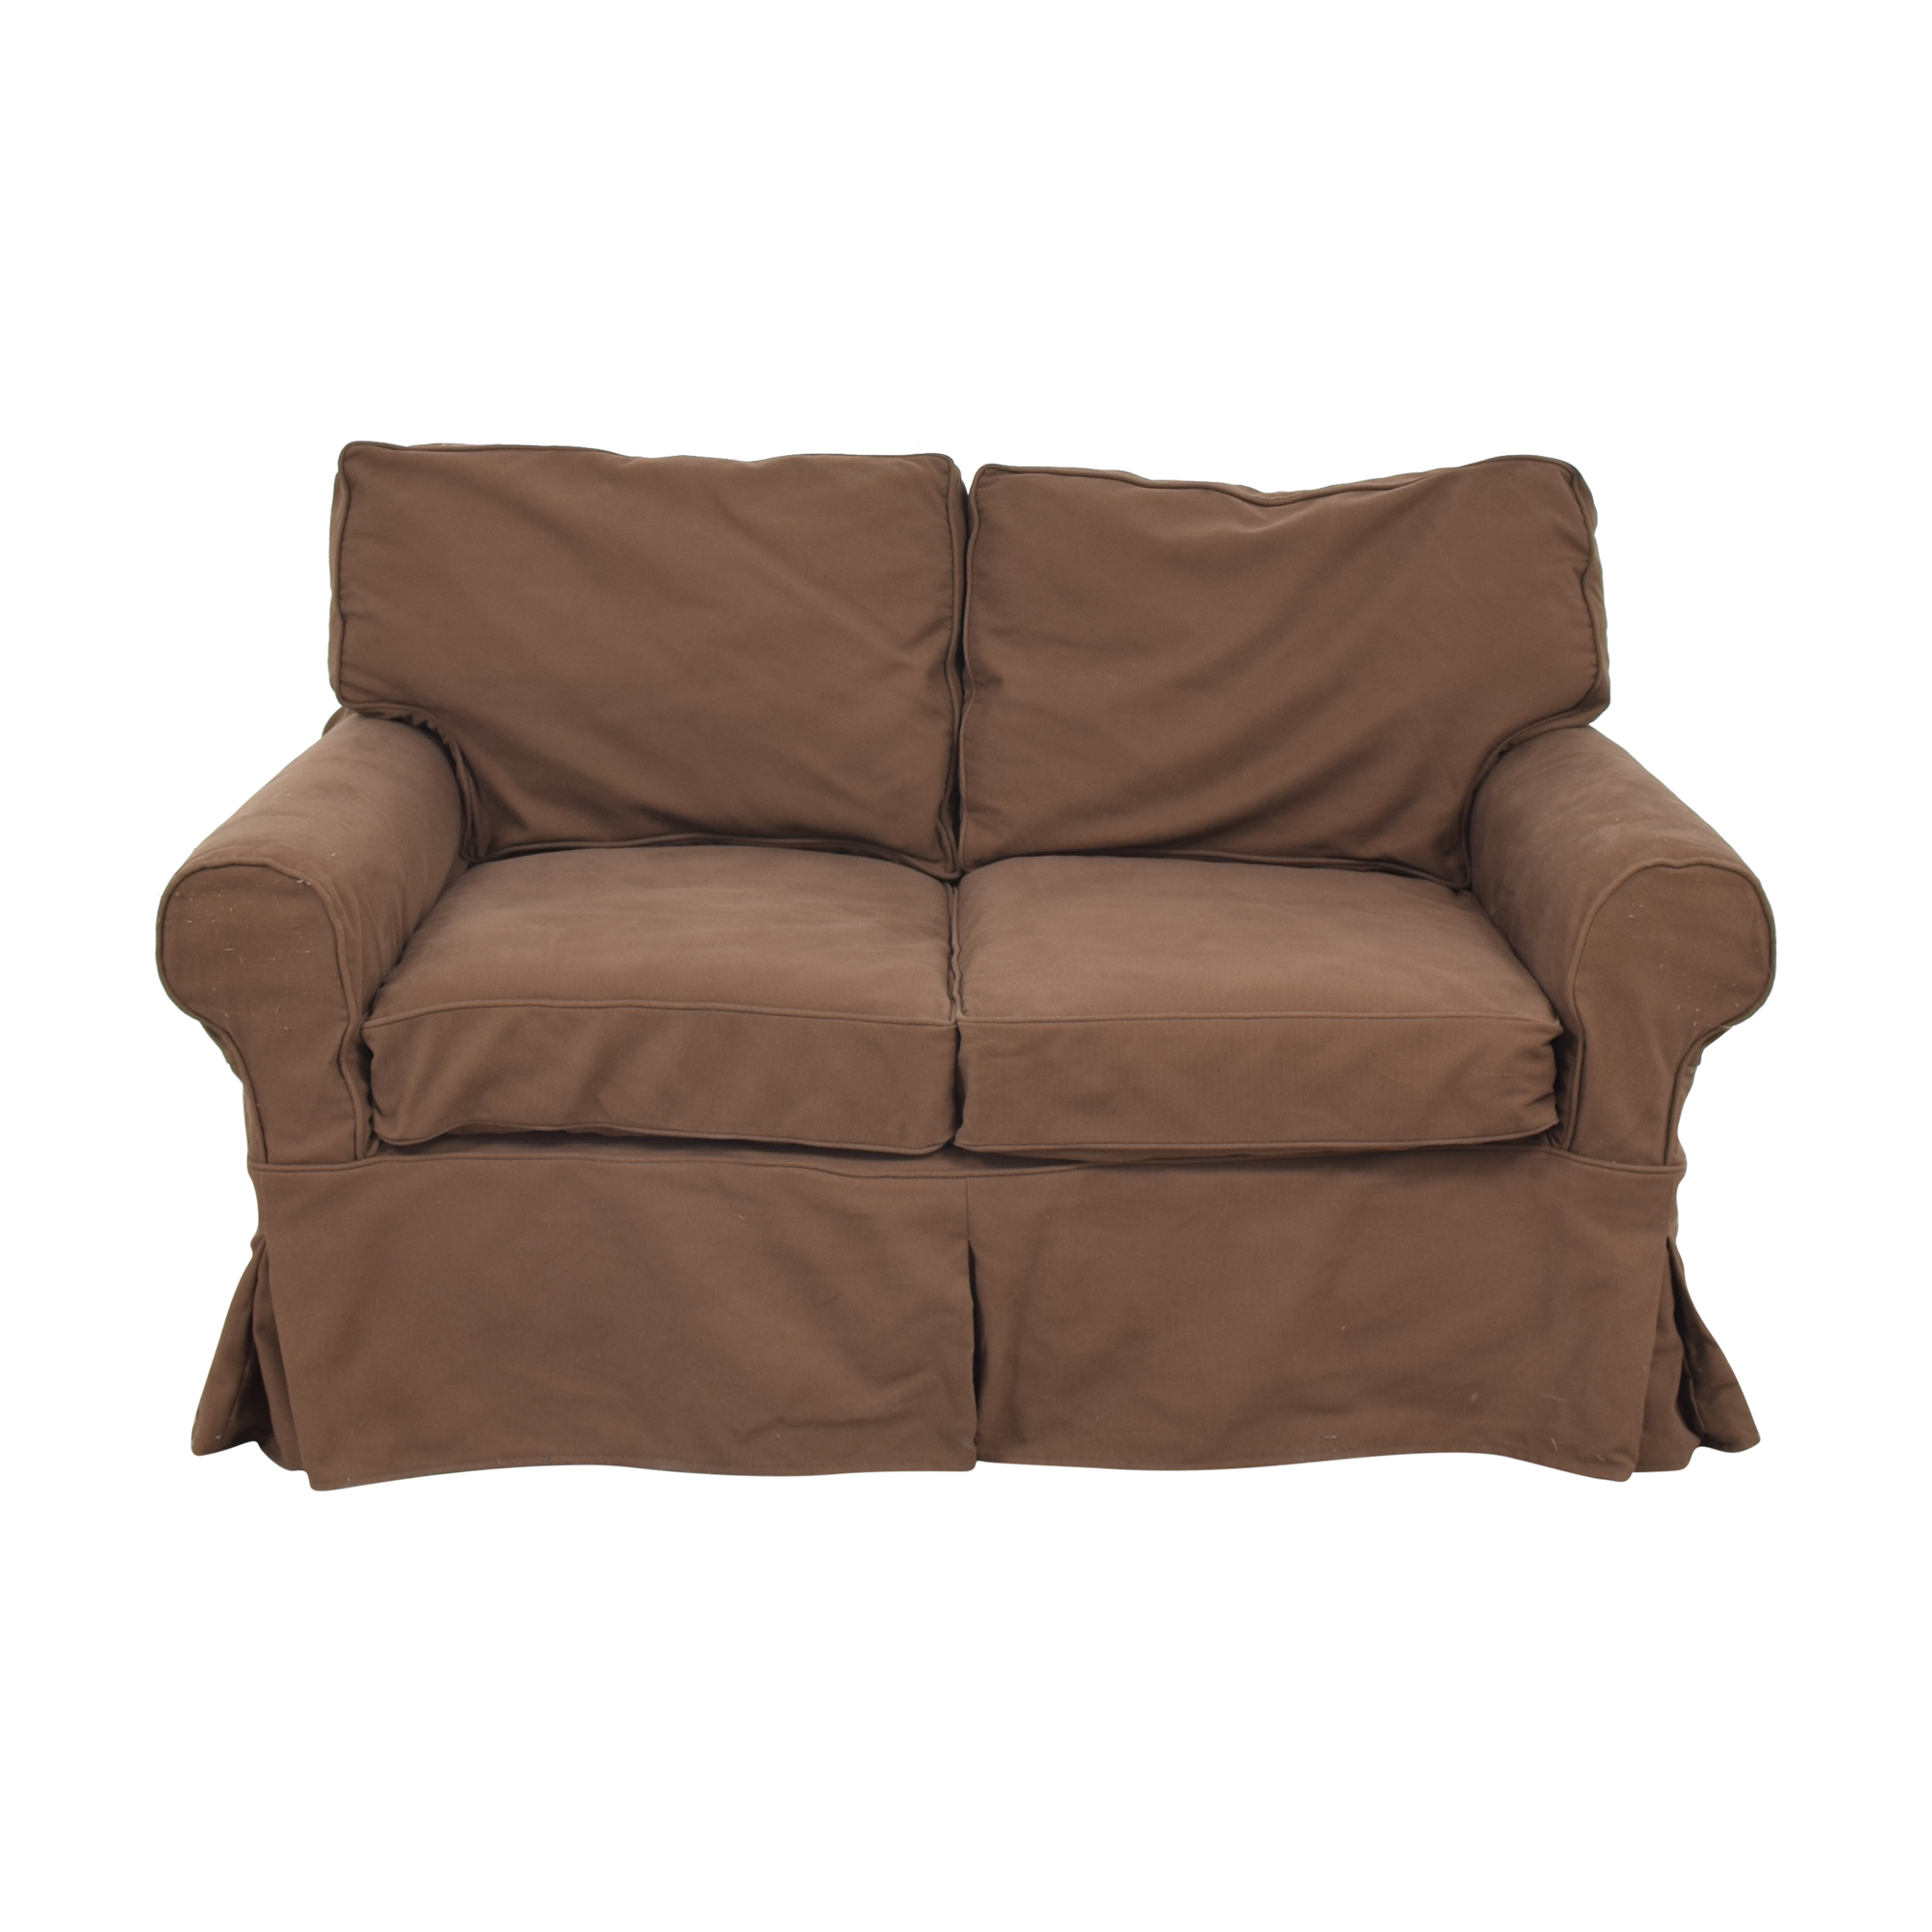 Pottery Barn Pottery Barn Basic Slipcover Loveseat brown